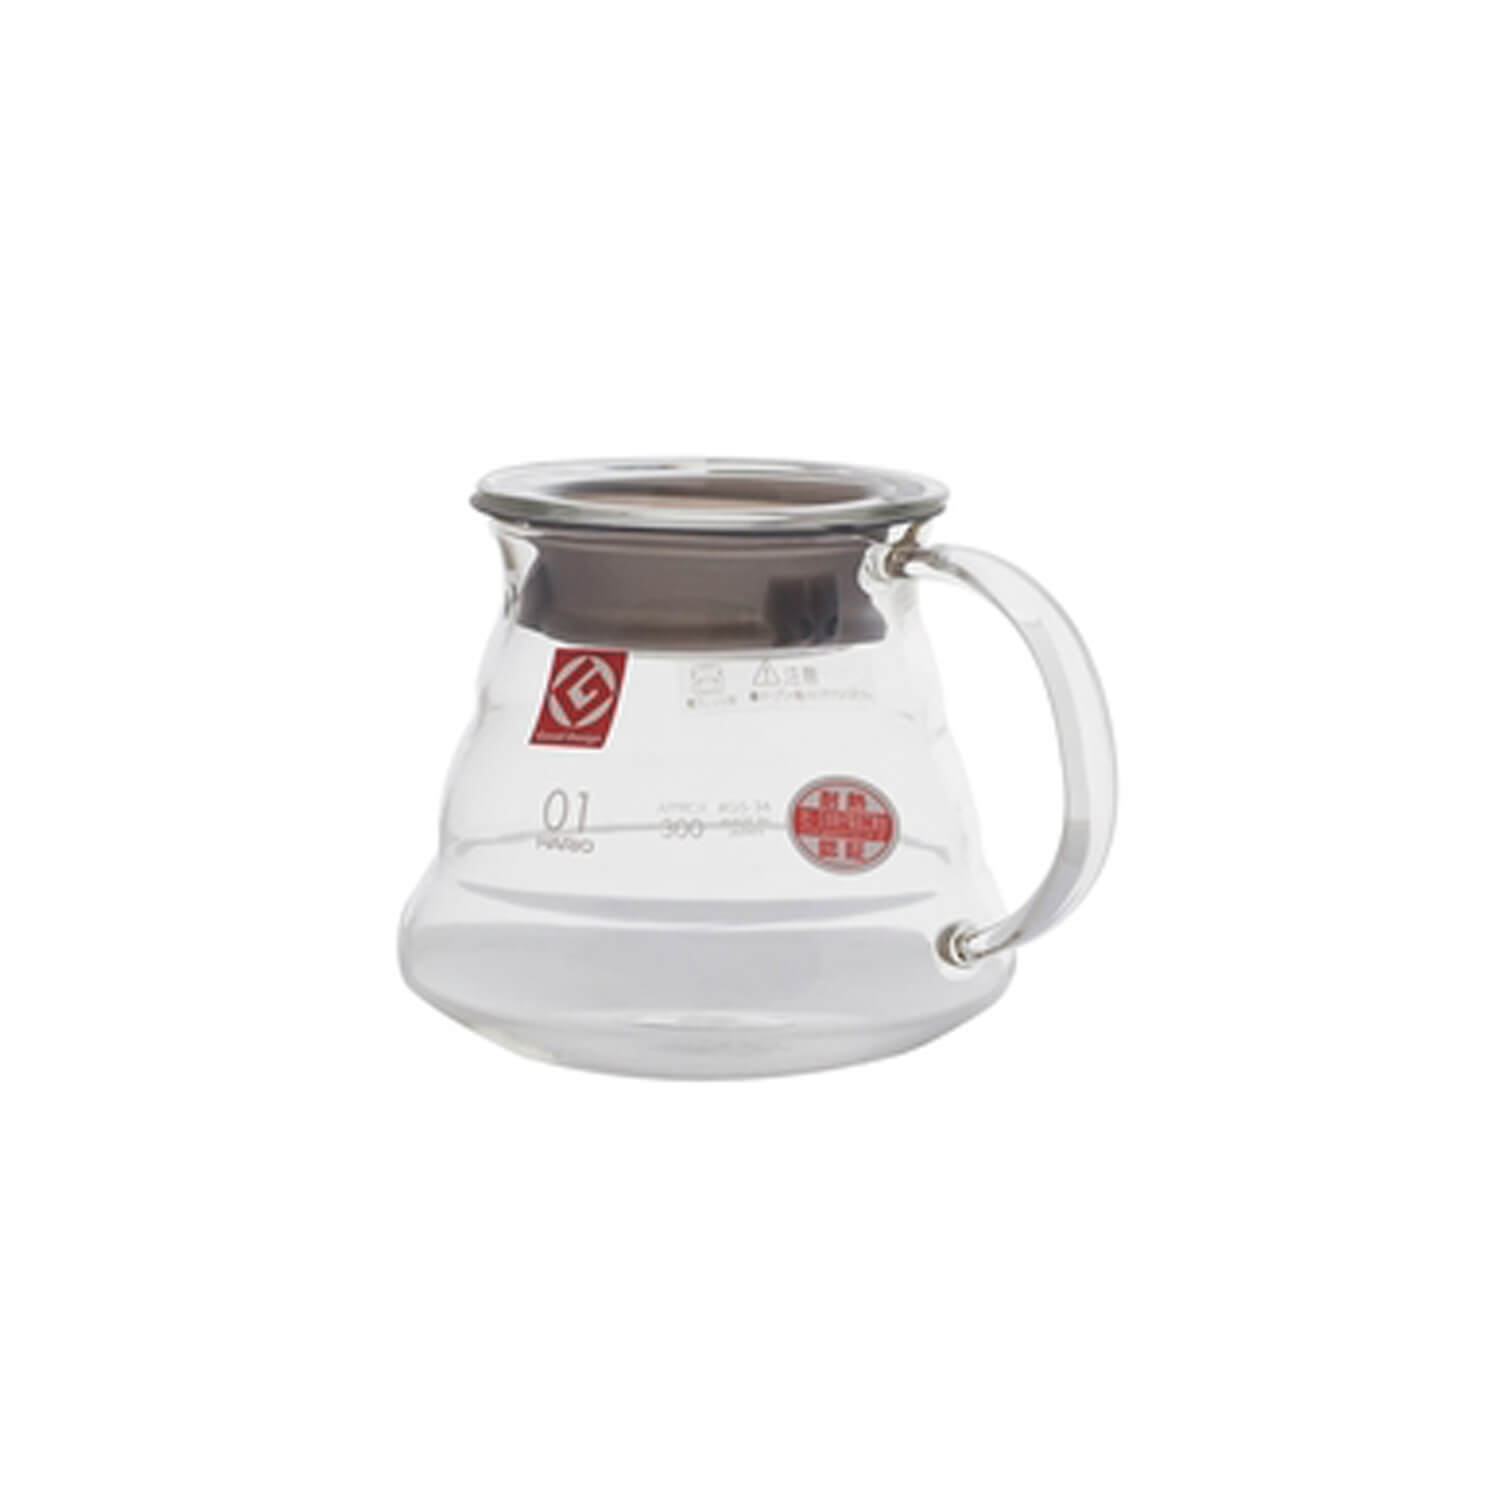 Hario - V60 Range Server - 01 - Clear - 360 ml